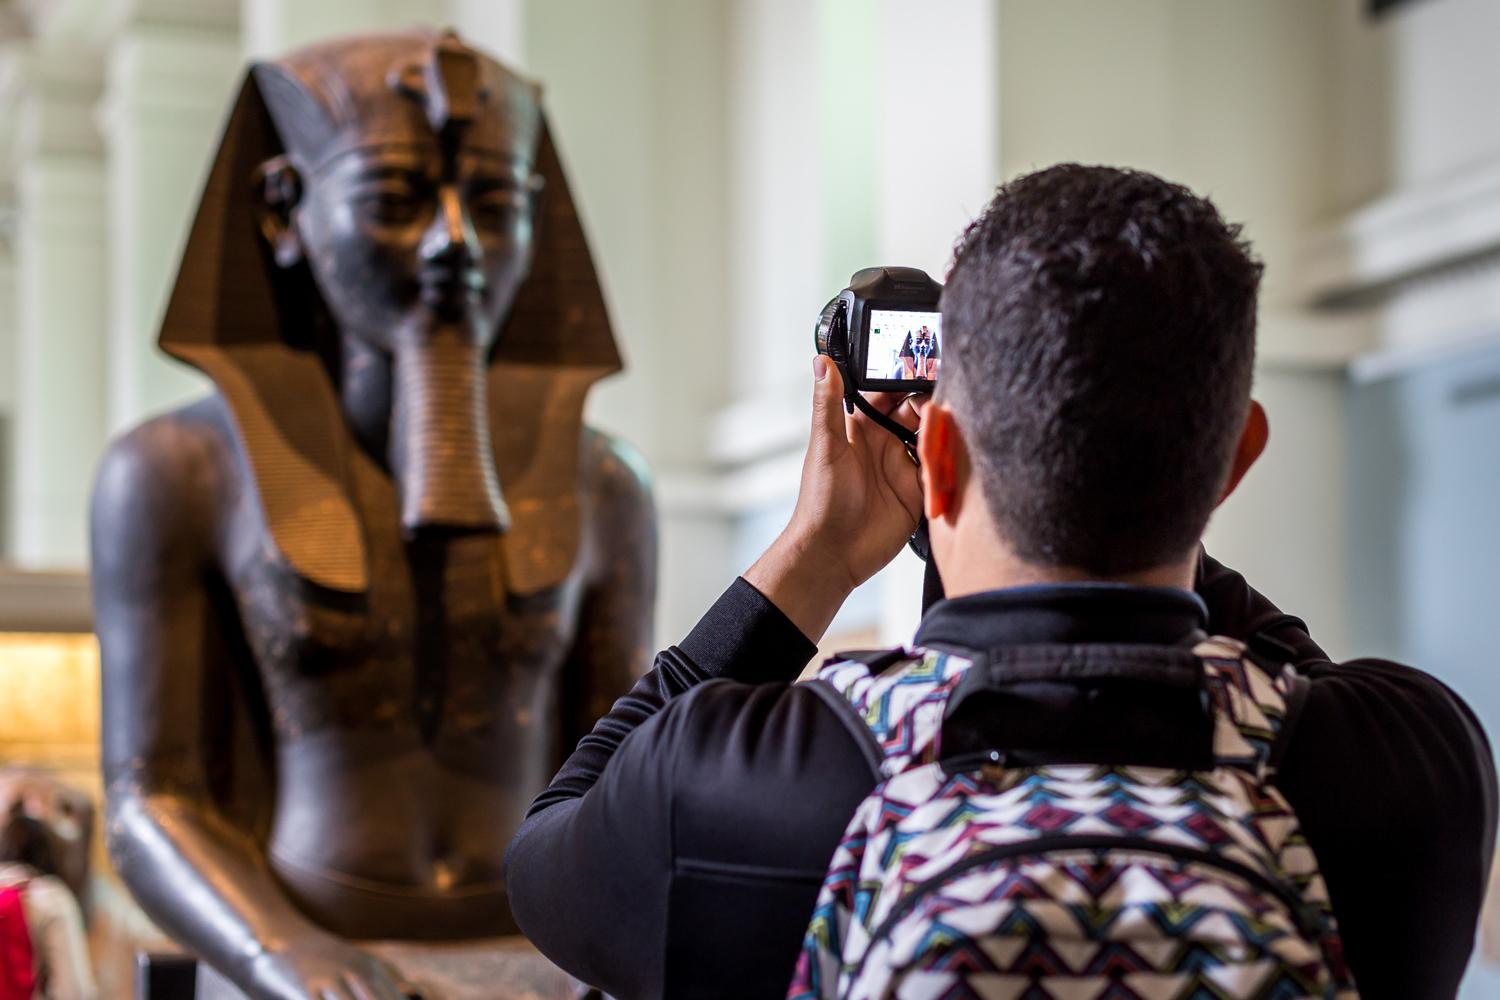 British Museum remains the most visited attraction in England with nearly 6 million visitors / Shutterstock